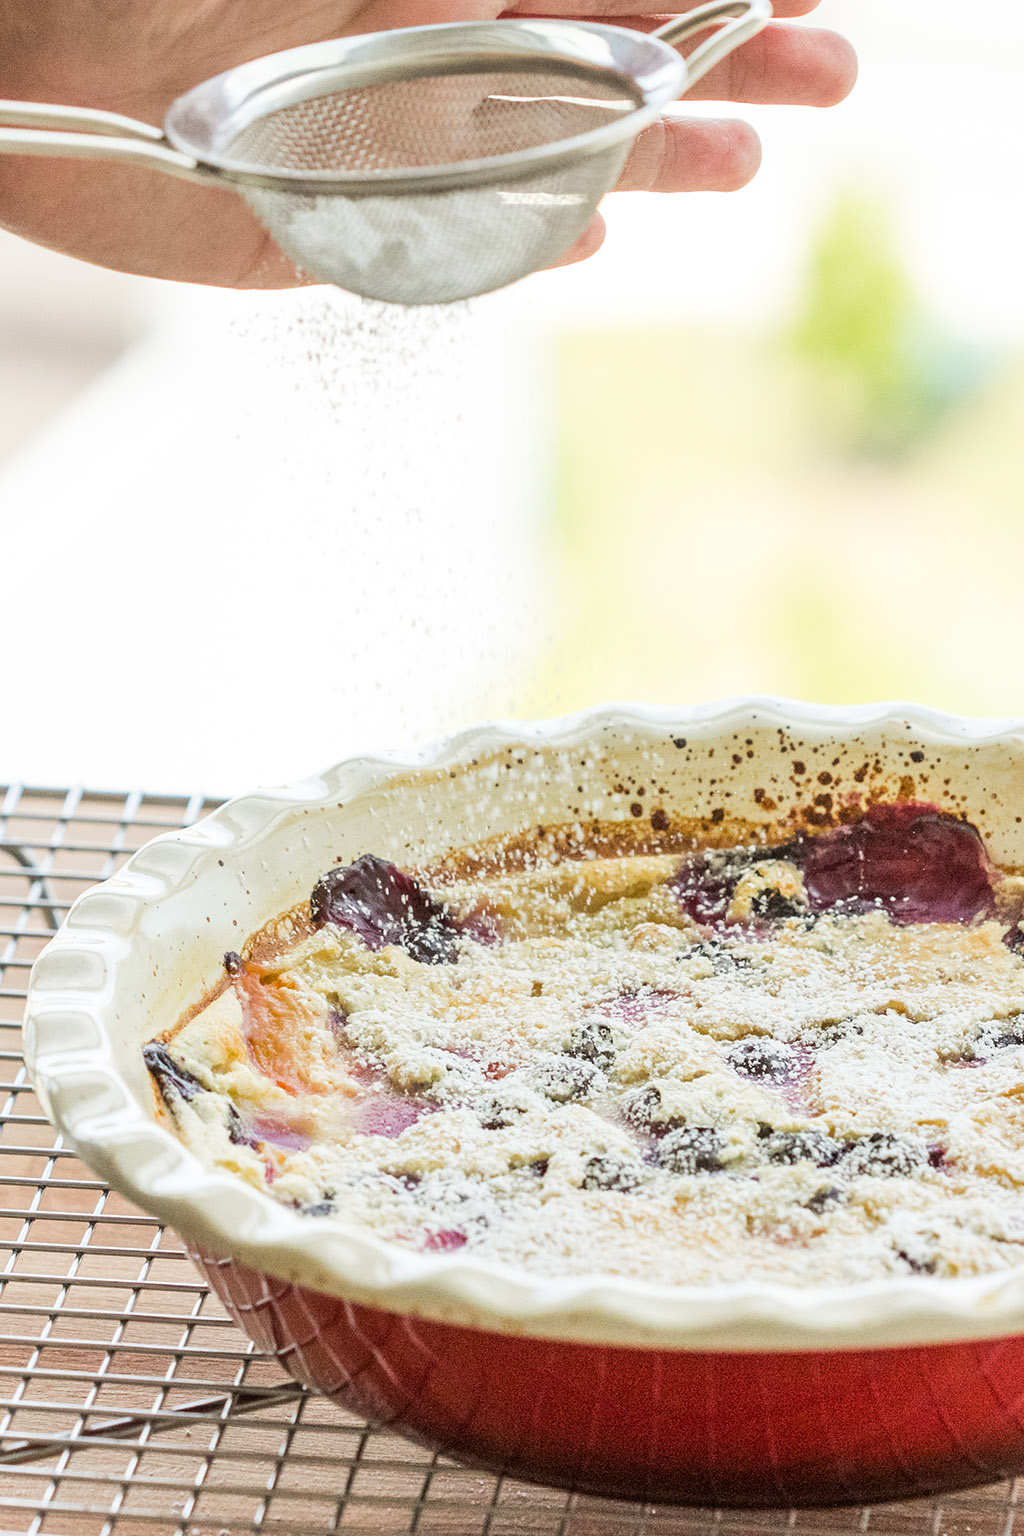 Vegan Golden Plum and Blueberry Clafoutis | The Viet Vegan | A warm, vanilla custardy hug that embraces summer golden plums and blueberries